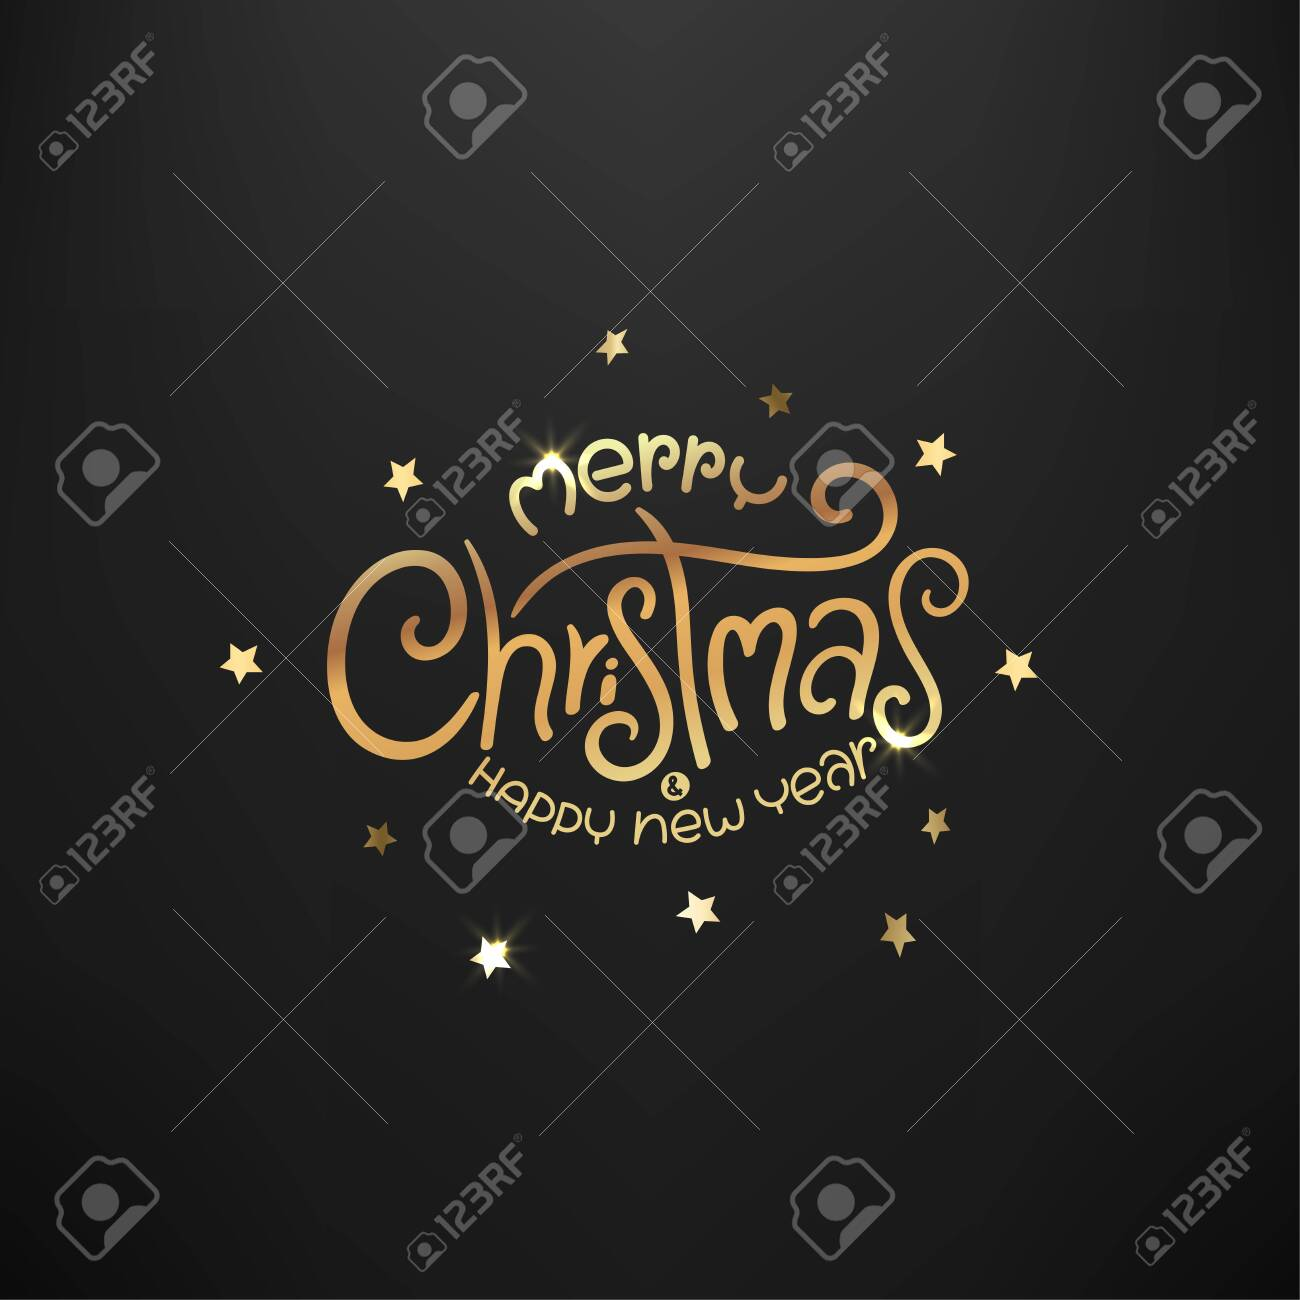 Merry Christmas and Happy new year luxury card - 133878712